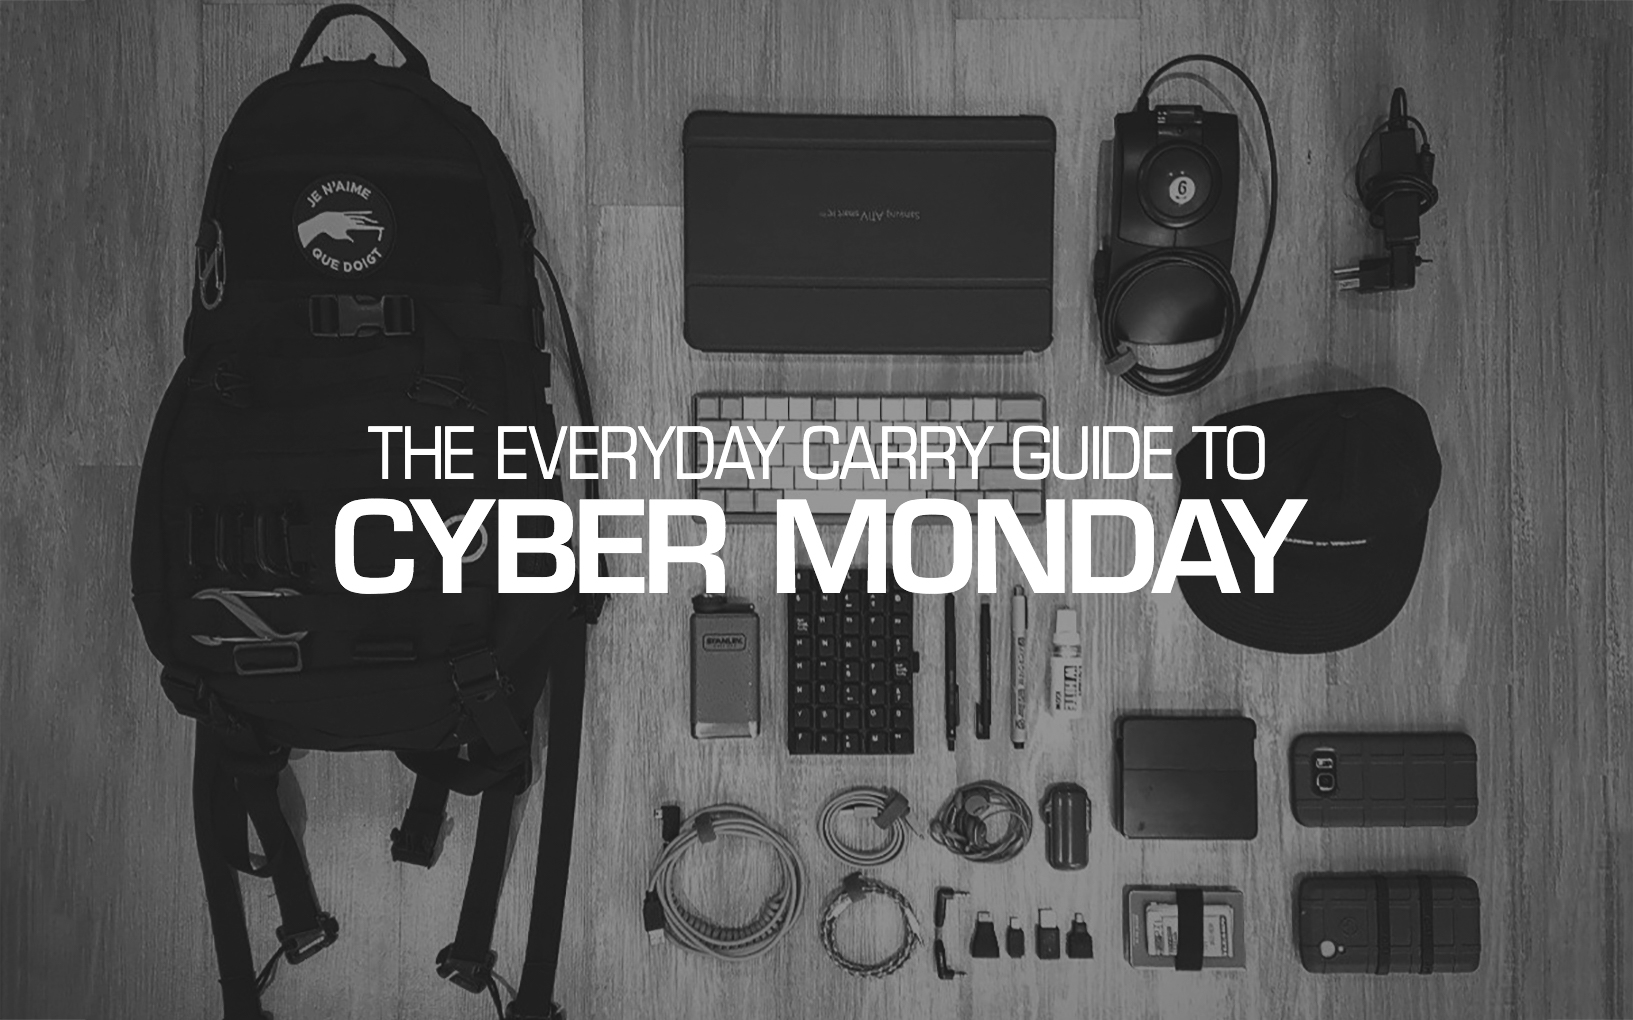 The Best Everyday Carry Cyber Monday Deals 2016